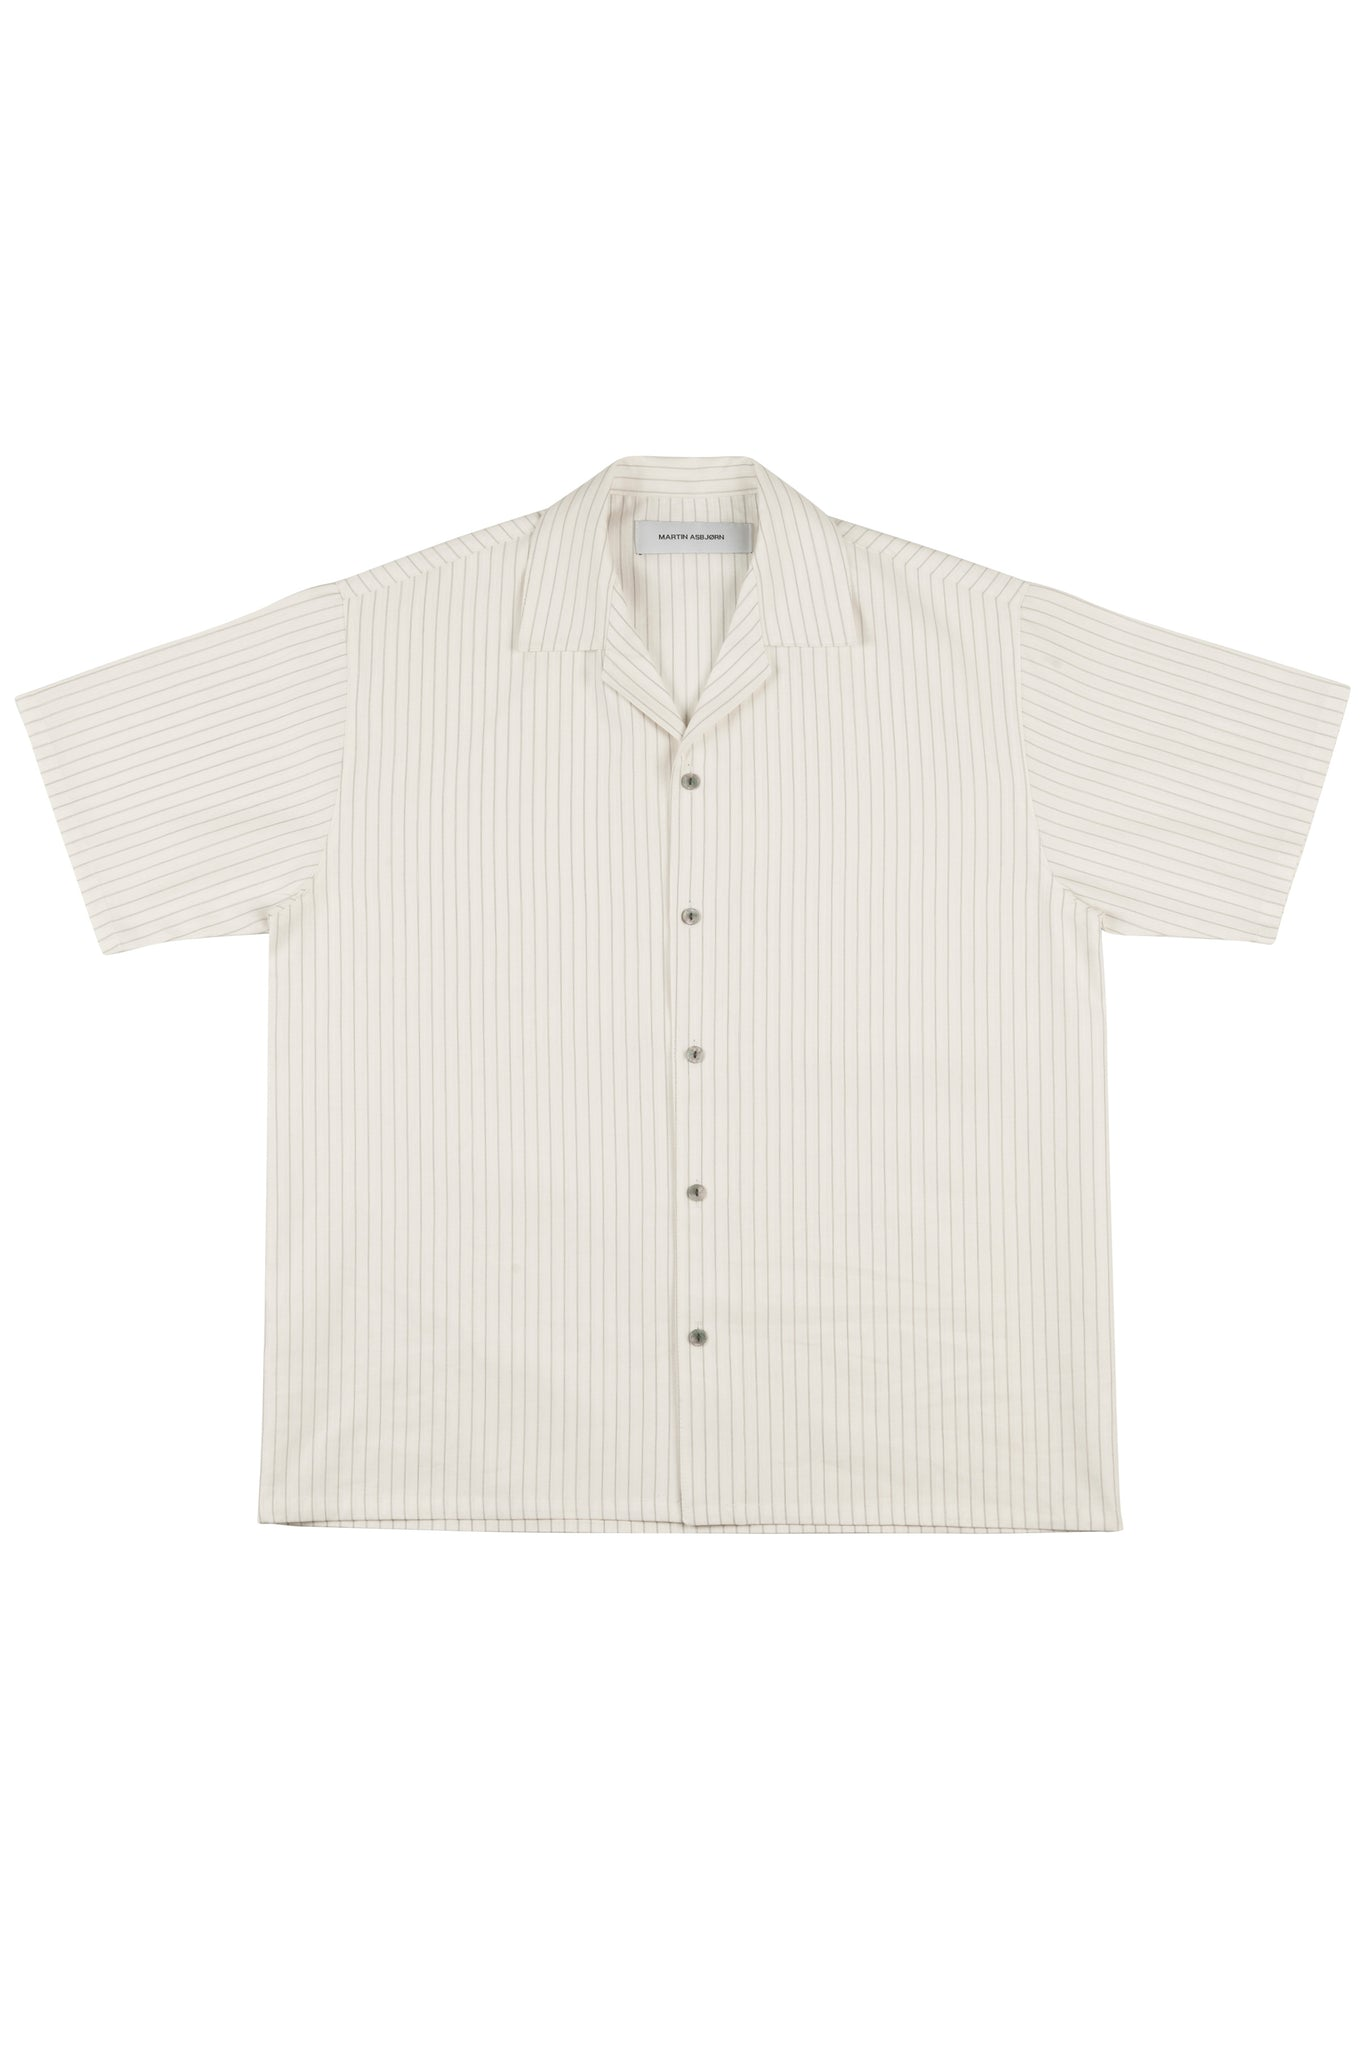 Martin Asbjorn Short Sleeve Pinstripe Shirt for Men